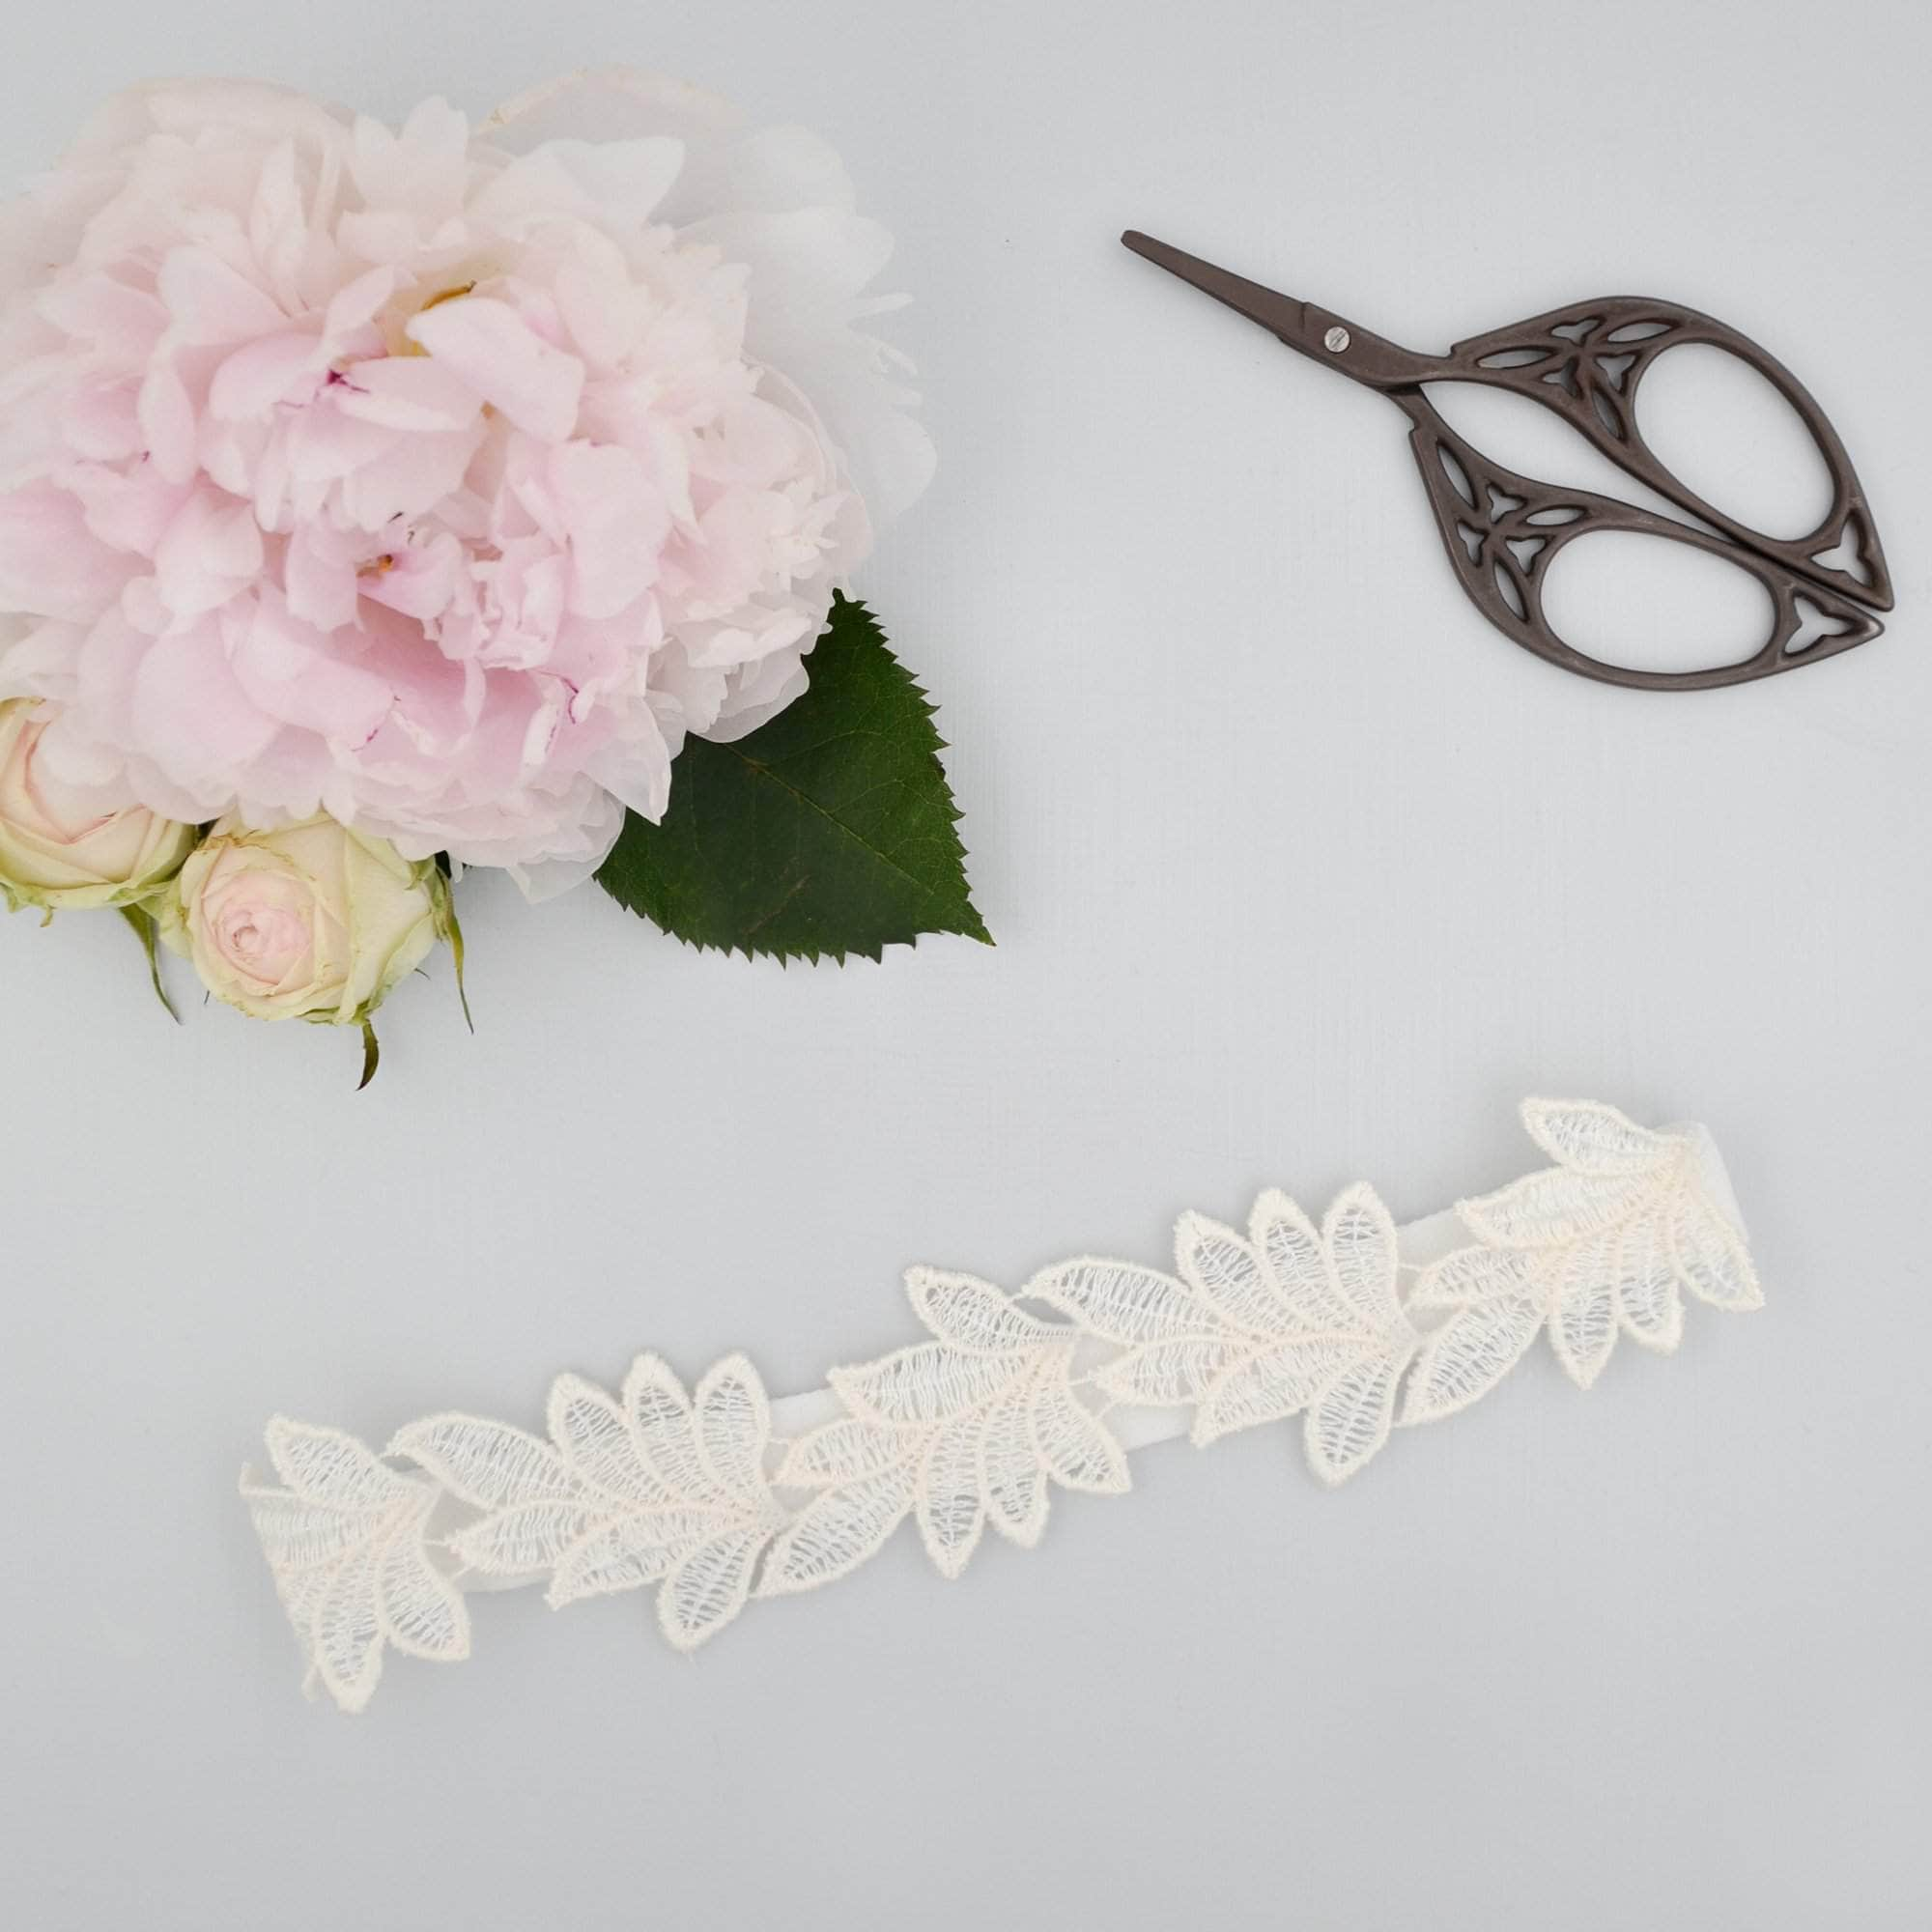 Wedding Garter Super sleek lace leaf wedding garter - 'Ferne'